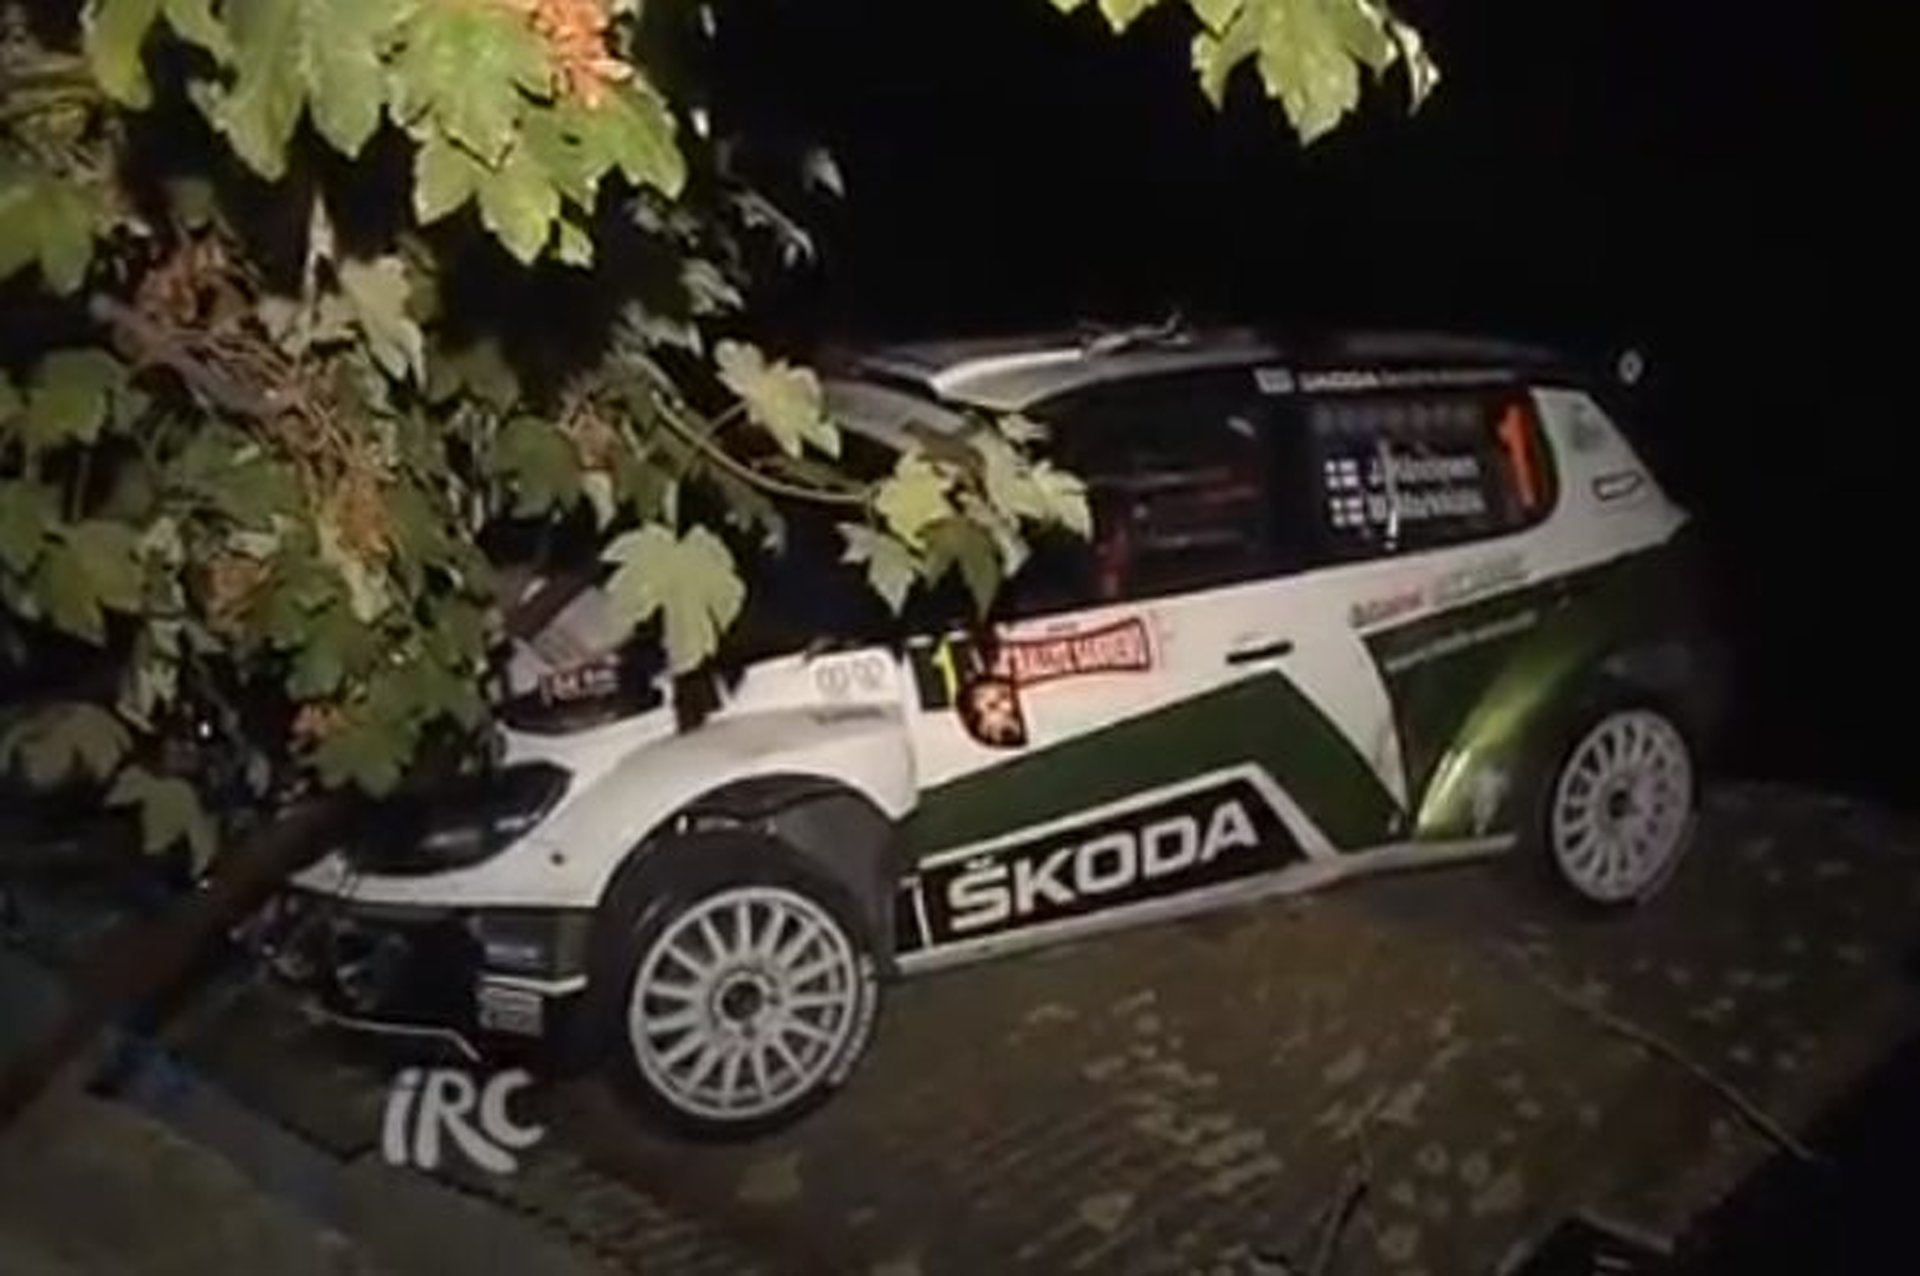 IRC Rally Skoda Crashes Onto the Roof of a House